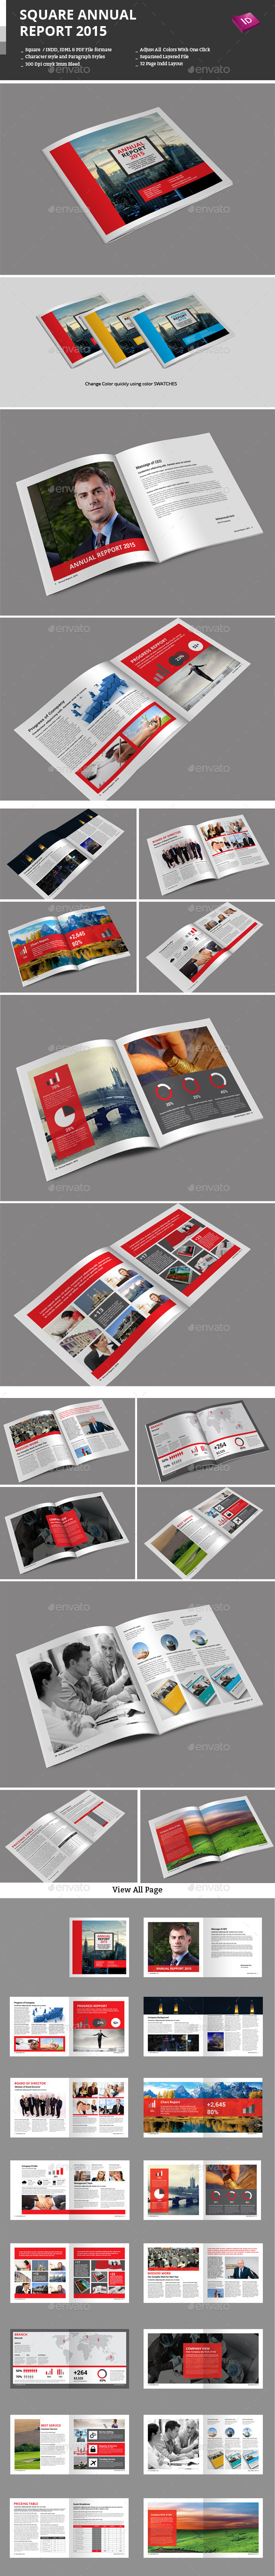 Square Annual Report 2015 - Informational Brochures